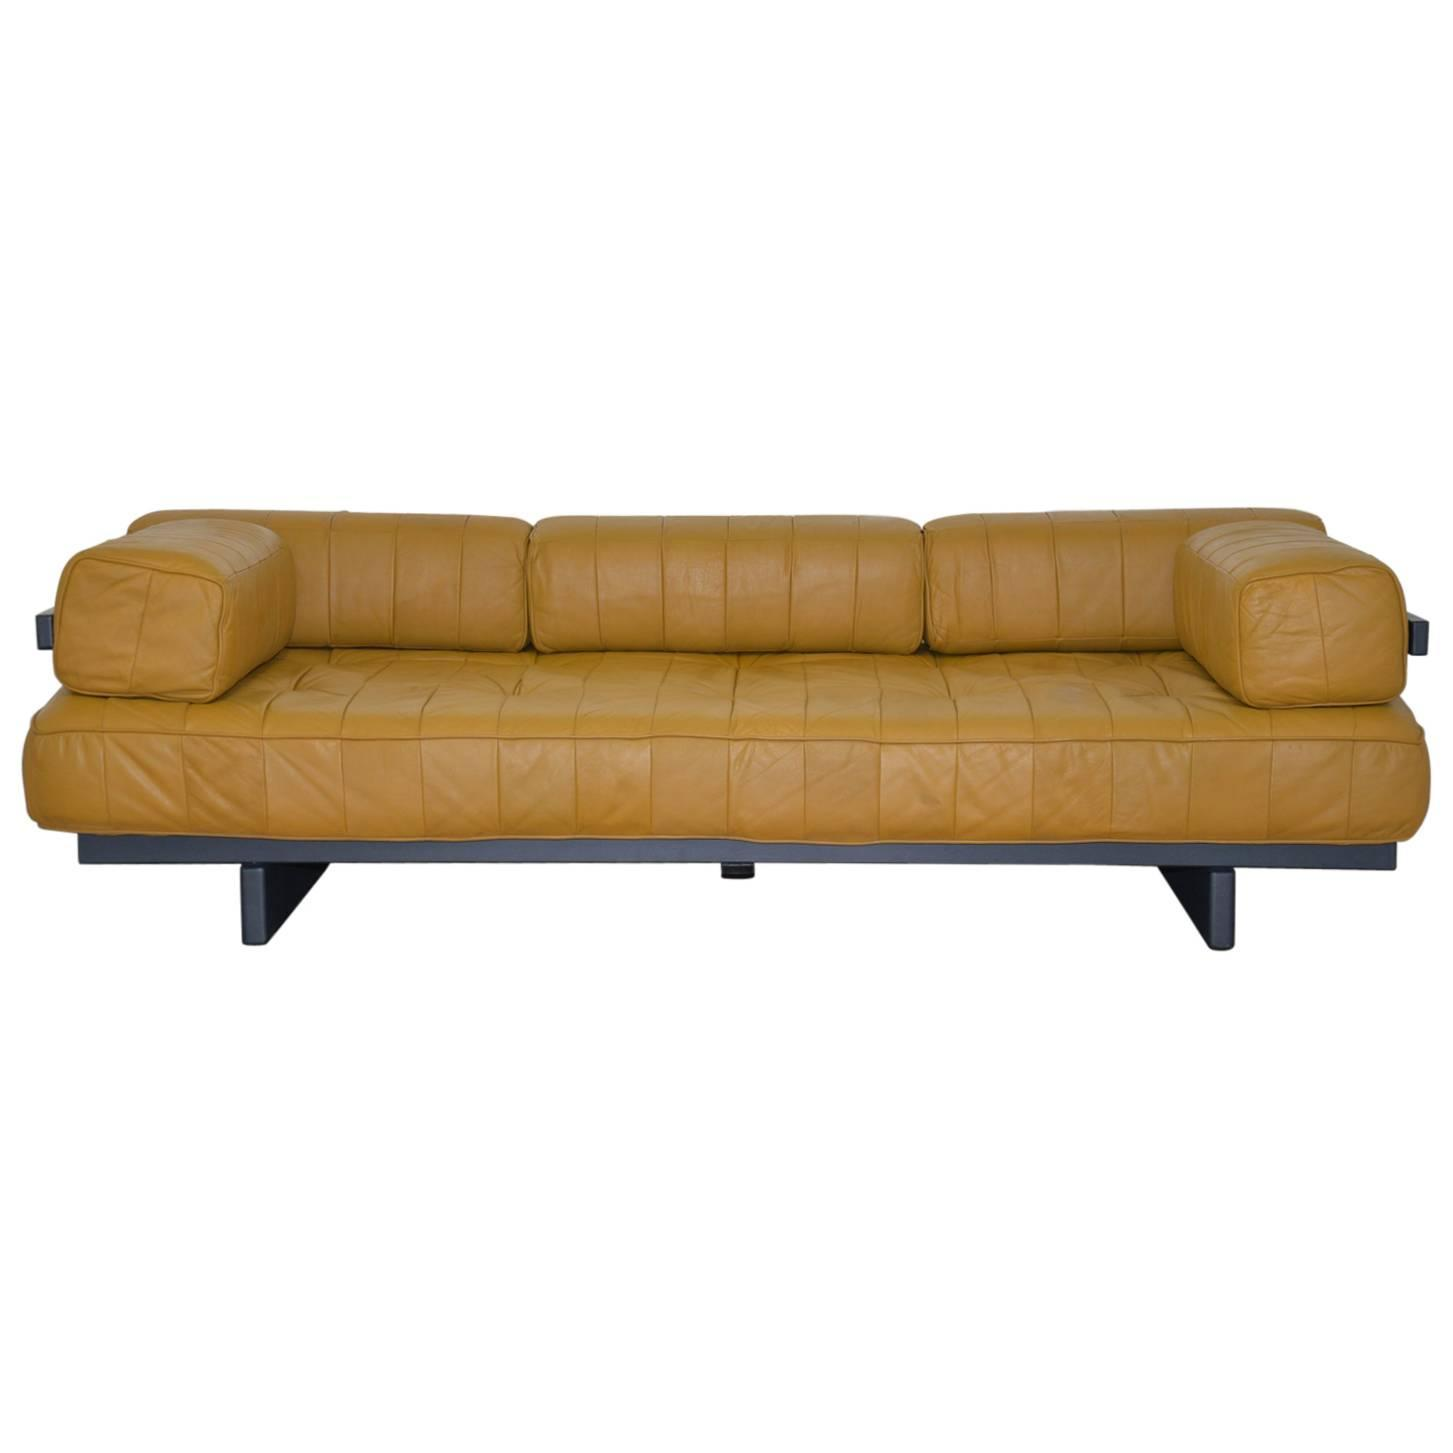 Vintage Swiss de Sede DS 80 leather Daybed 1960 s For Sale at 1stdibs